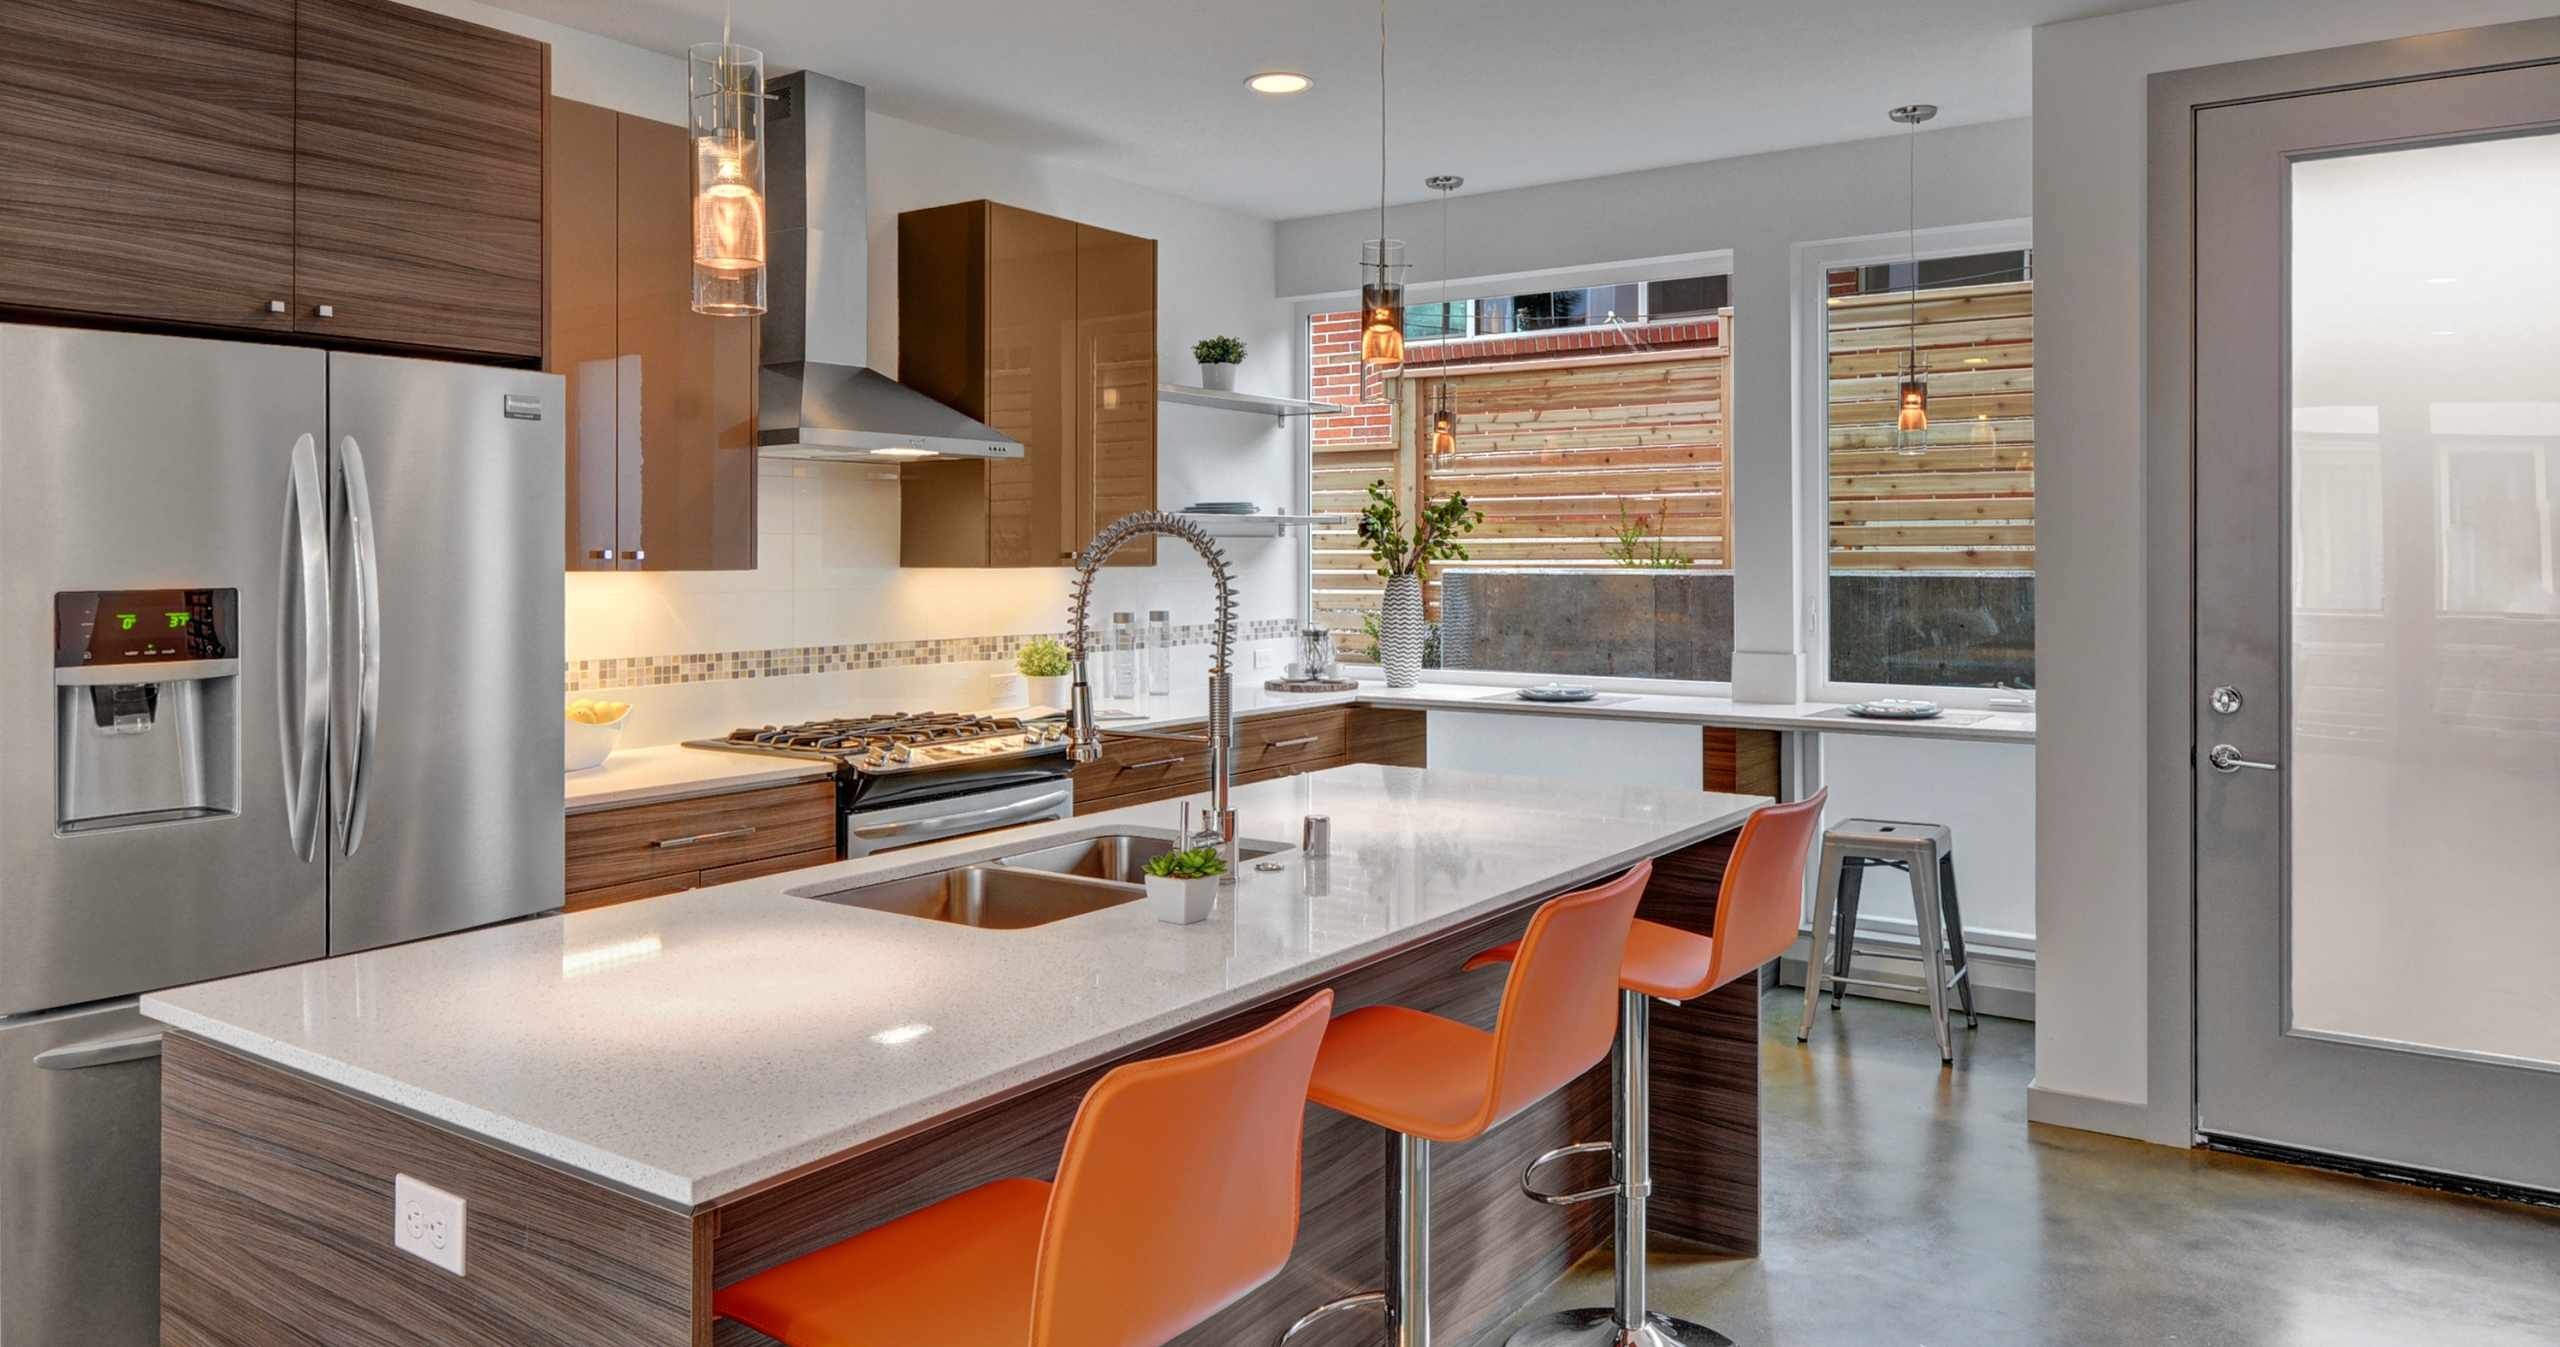 Modern Communities By Isola Homes Showcased In One Convenient Location.  Full Sized Model Kitchens And Bath, Onsite Design Studio.